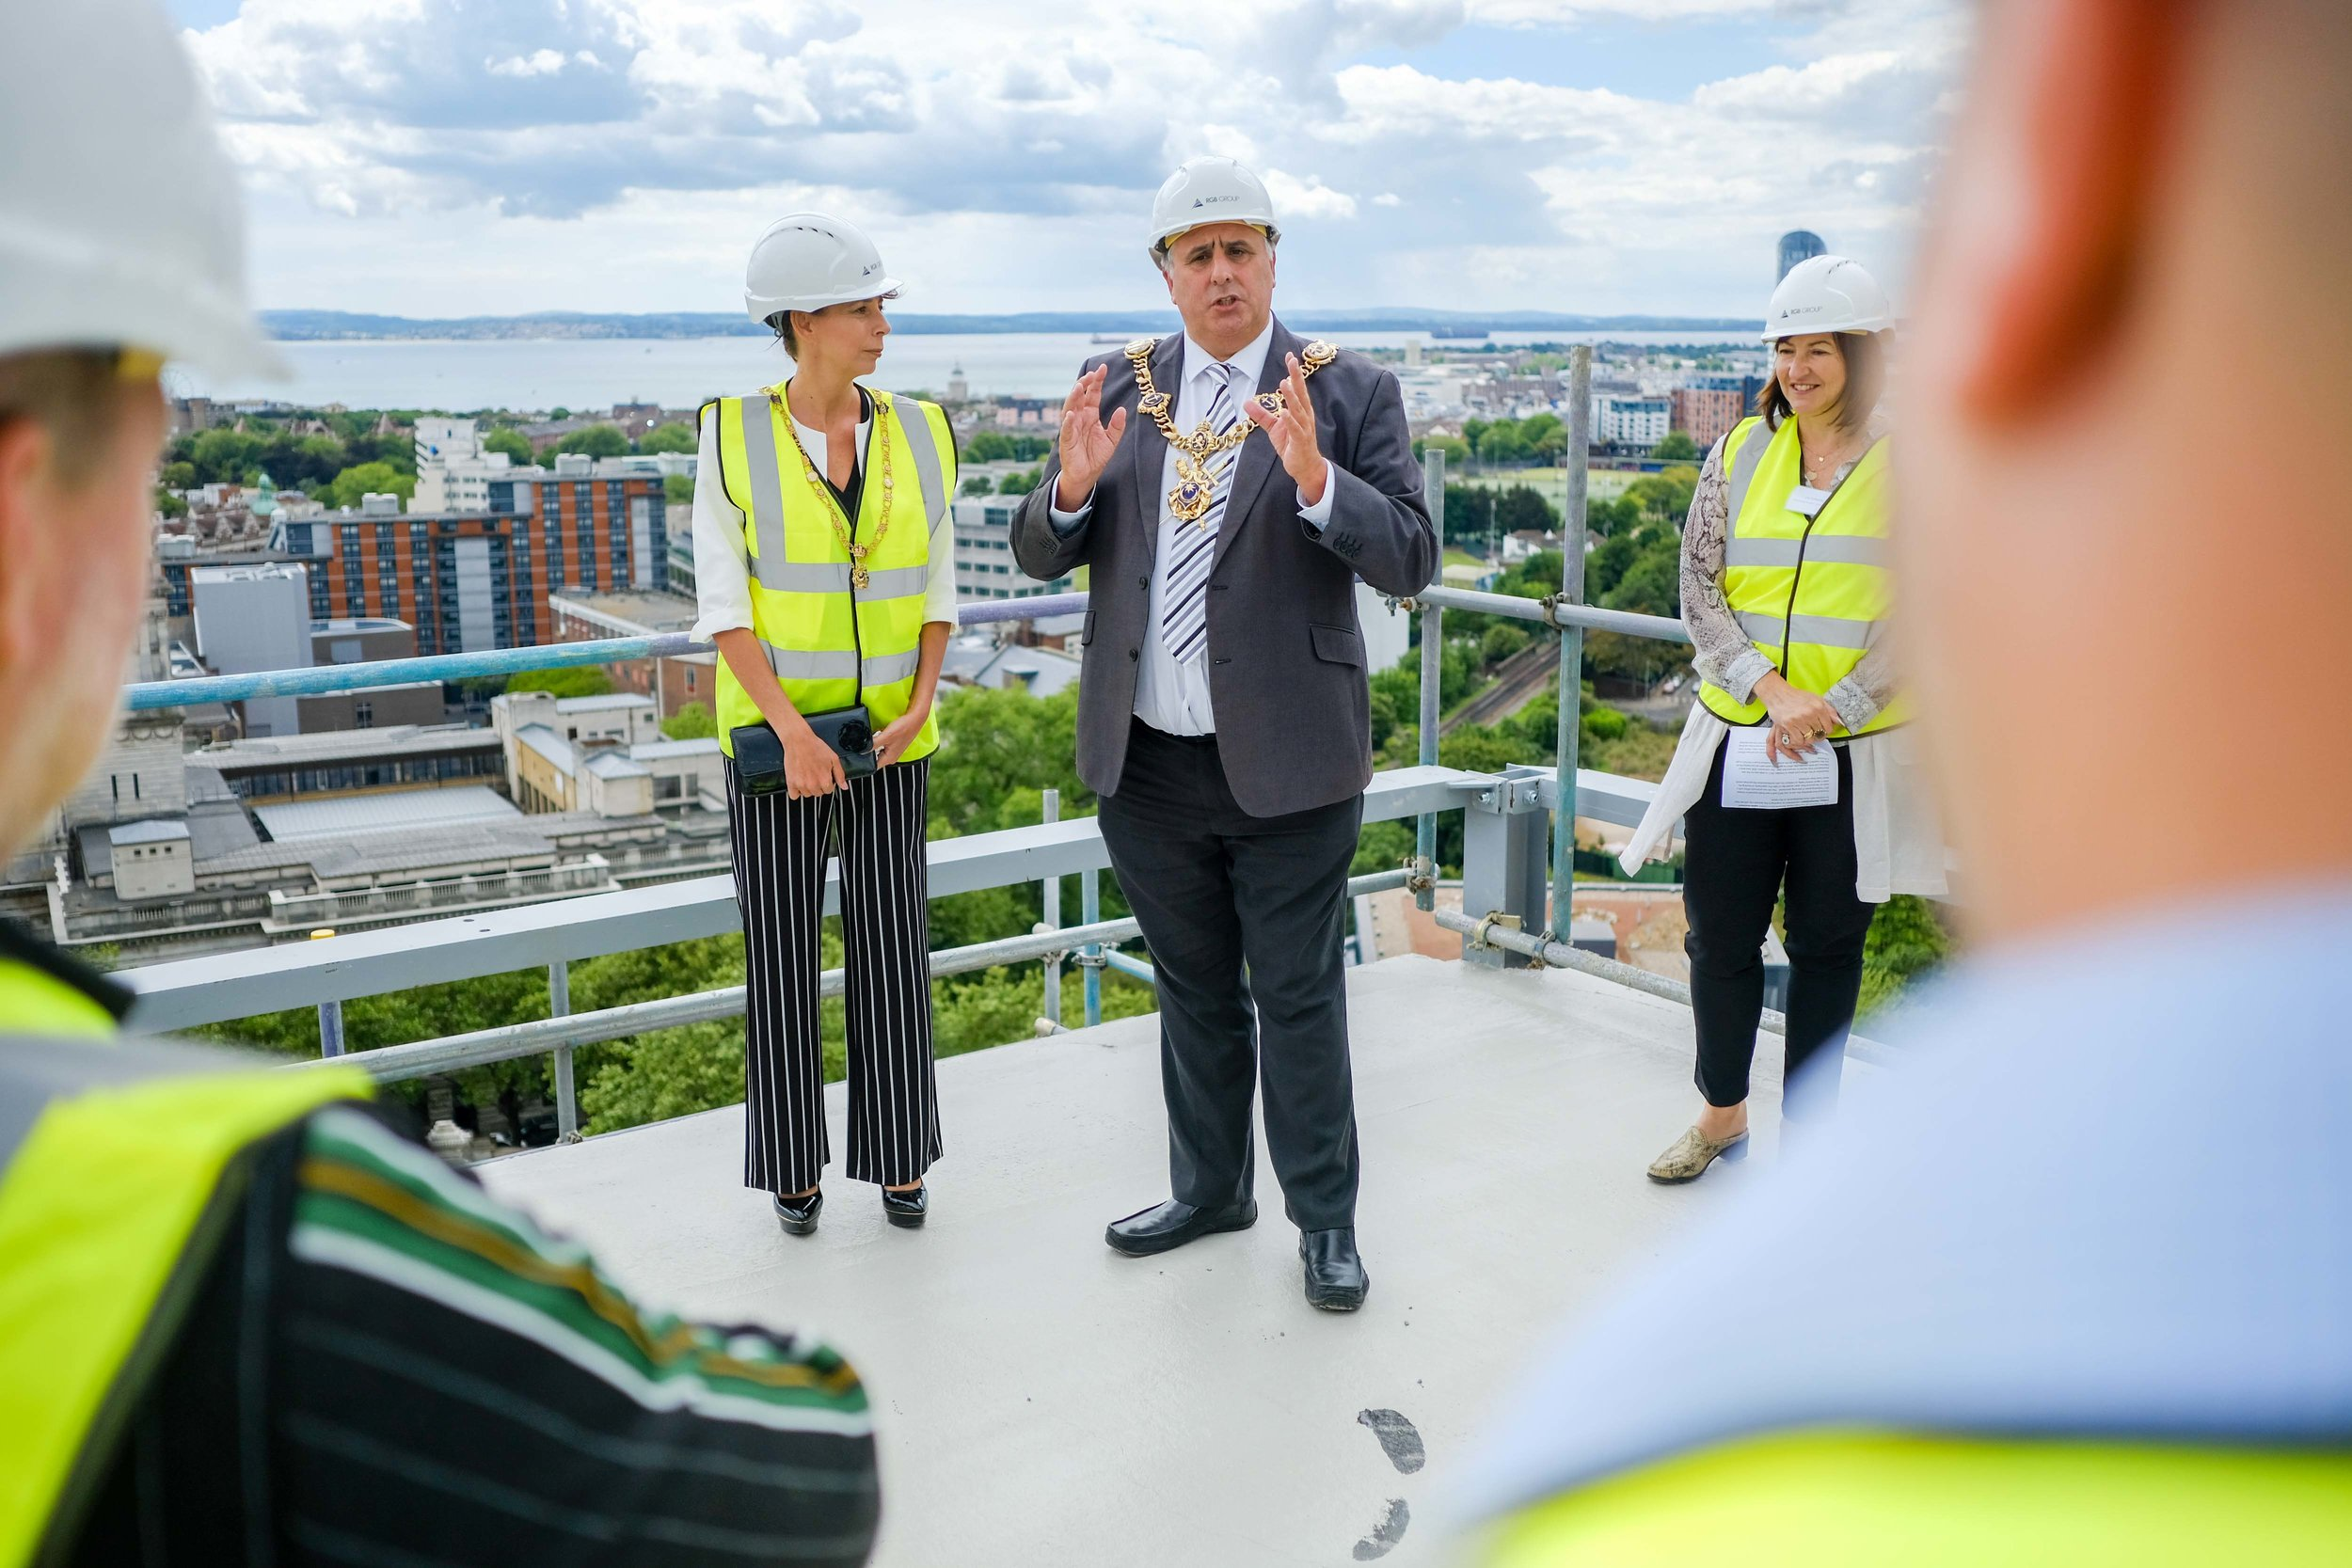 Stanhope House Topping Out 28.05.19 - Solent Sky Services--39.JPG